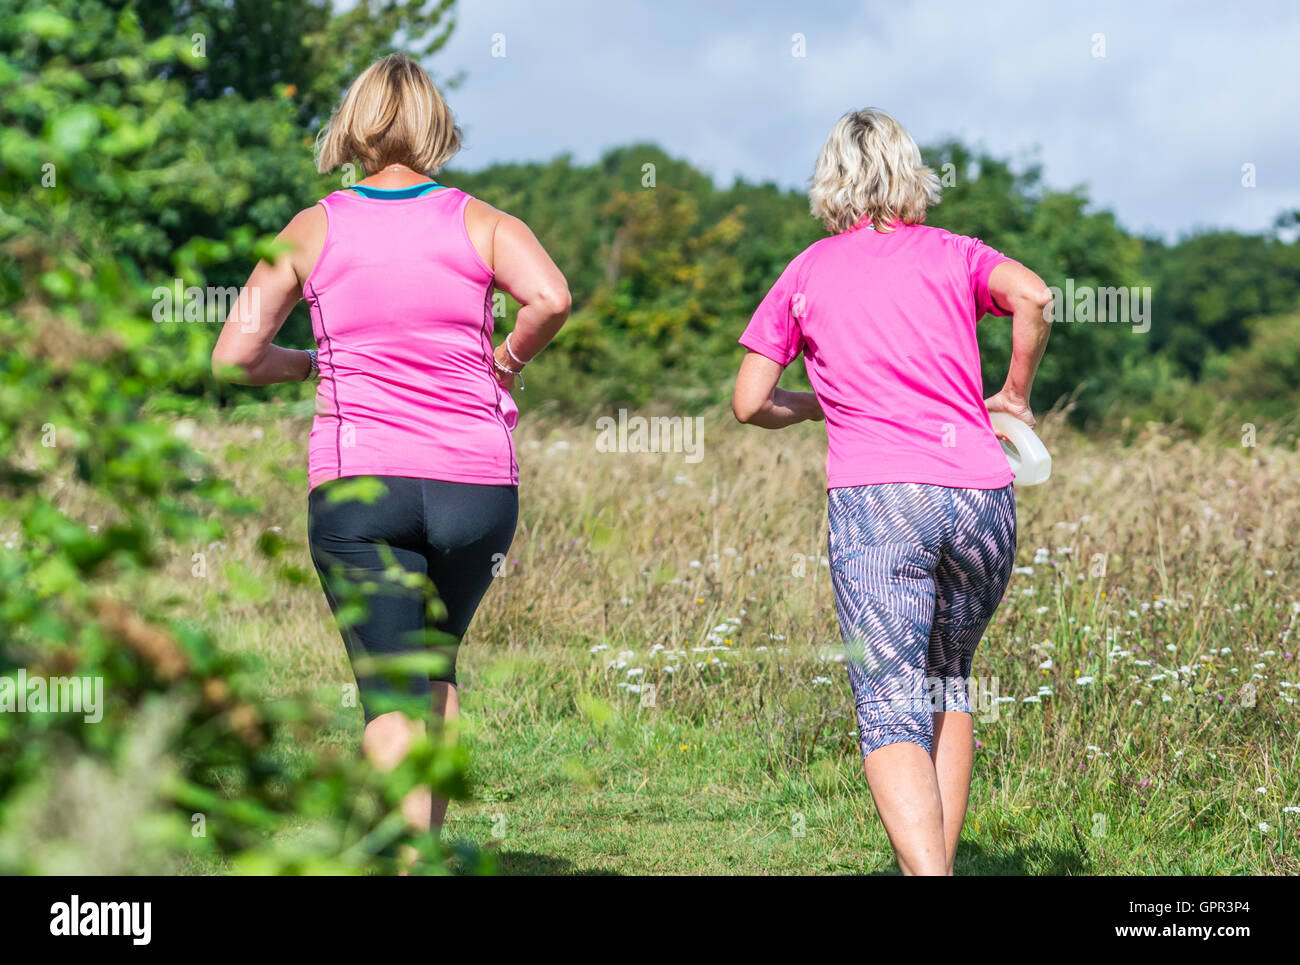 Healthy lifestyle. Pair of female joggers jogging through fields in the British countryside. - Stock Image